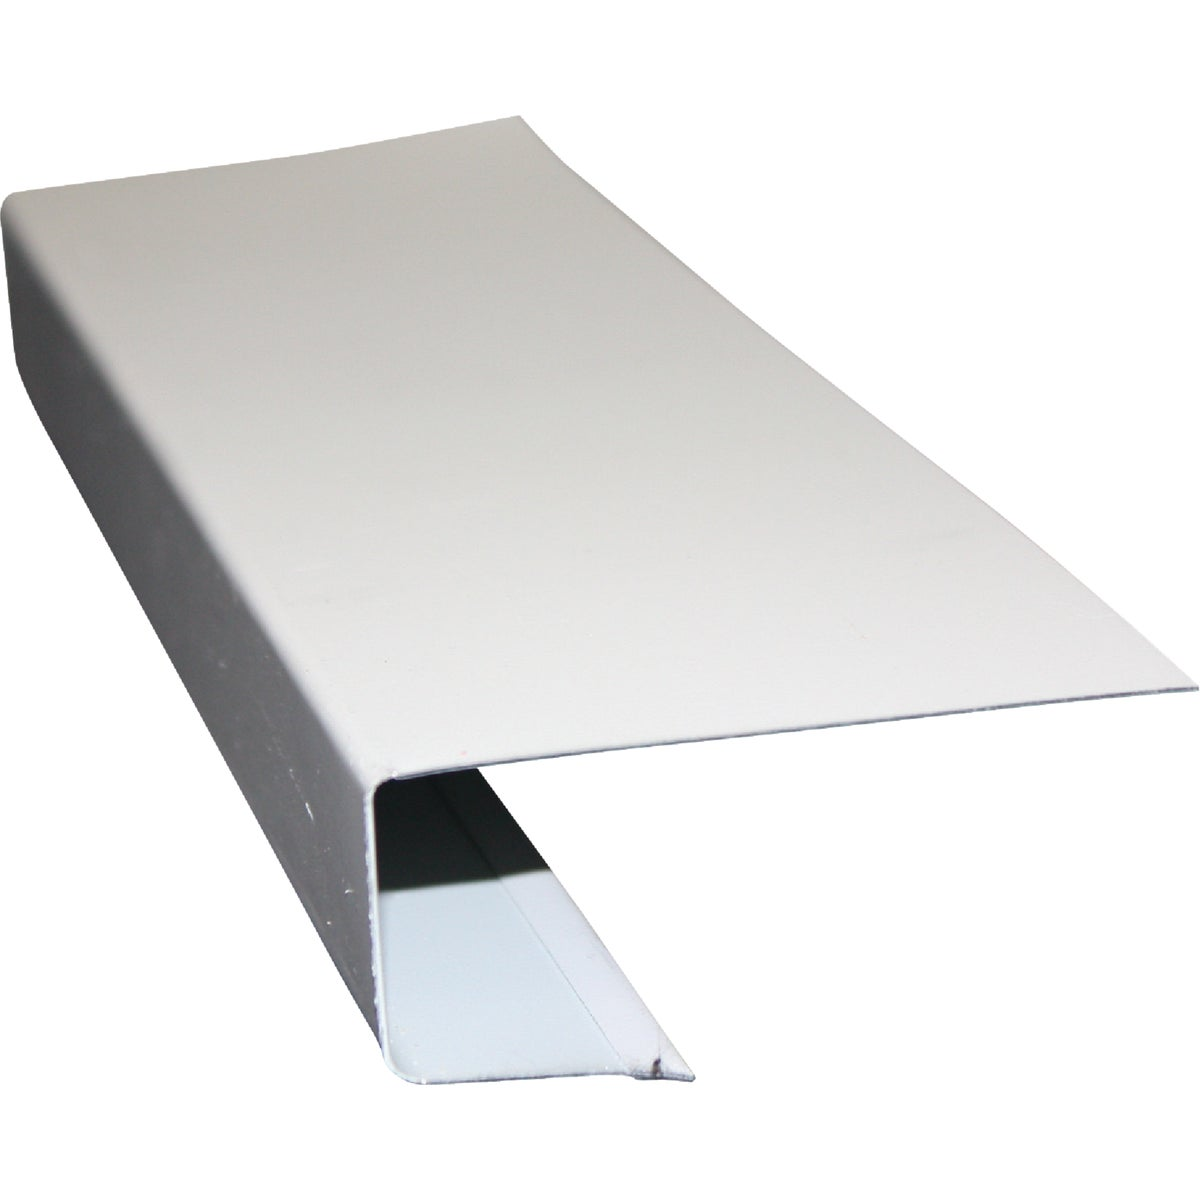 "5""STYLE C WHT ROOF EDGE - 32200-WH20 by Klauer Mfg Co"